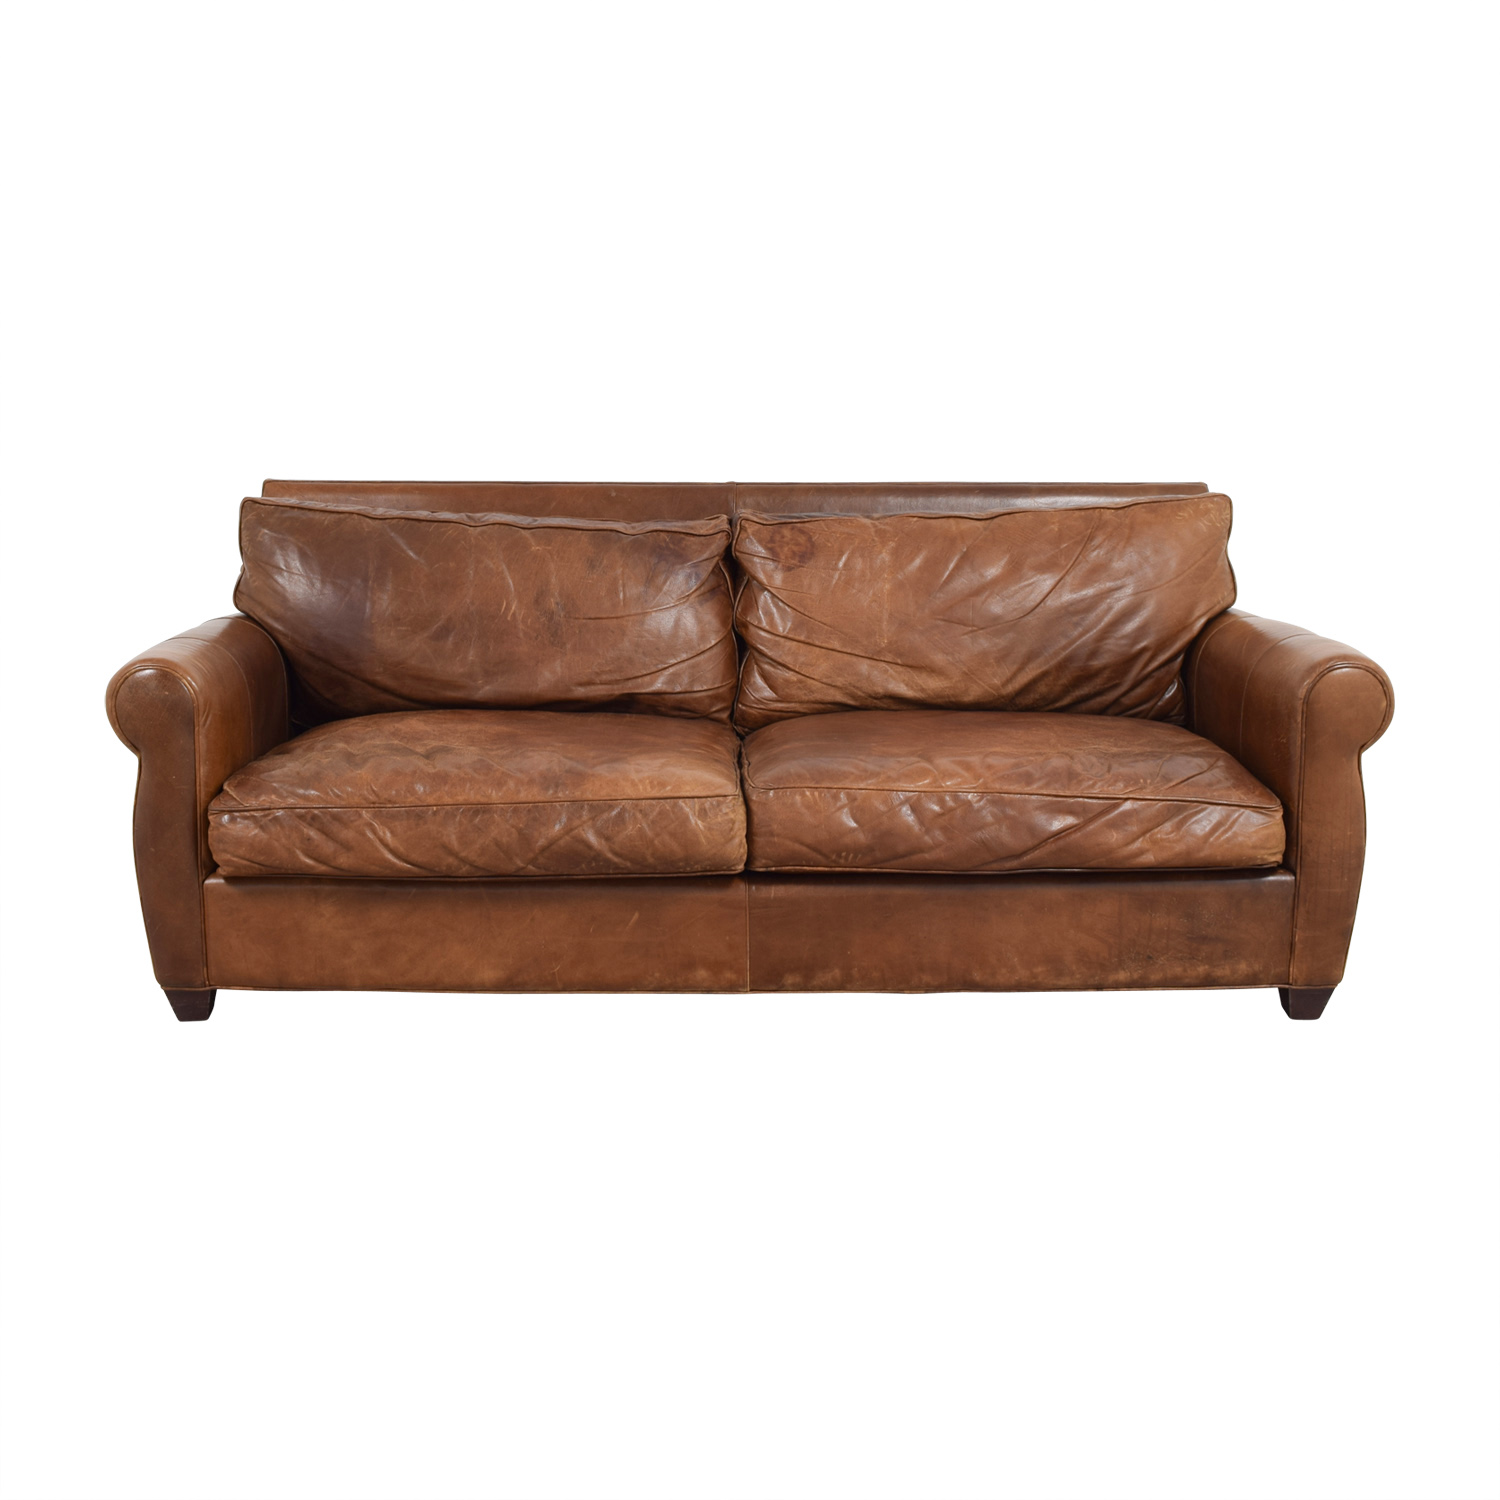 Arhaus Rust Leather Two Cushion Sofa Dimensions